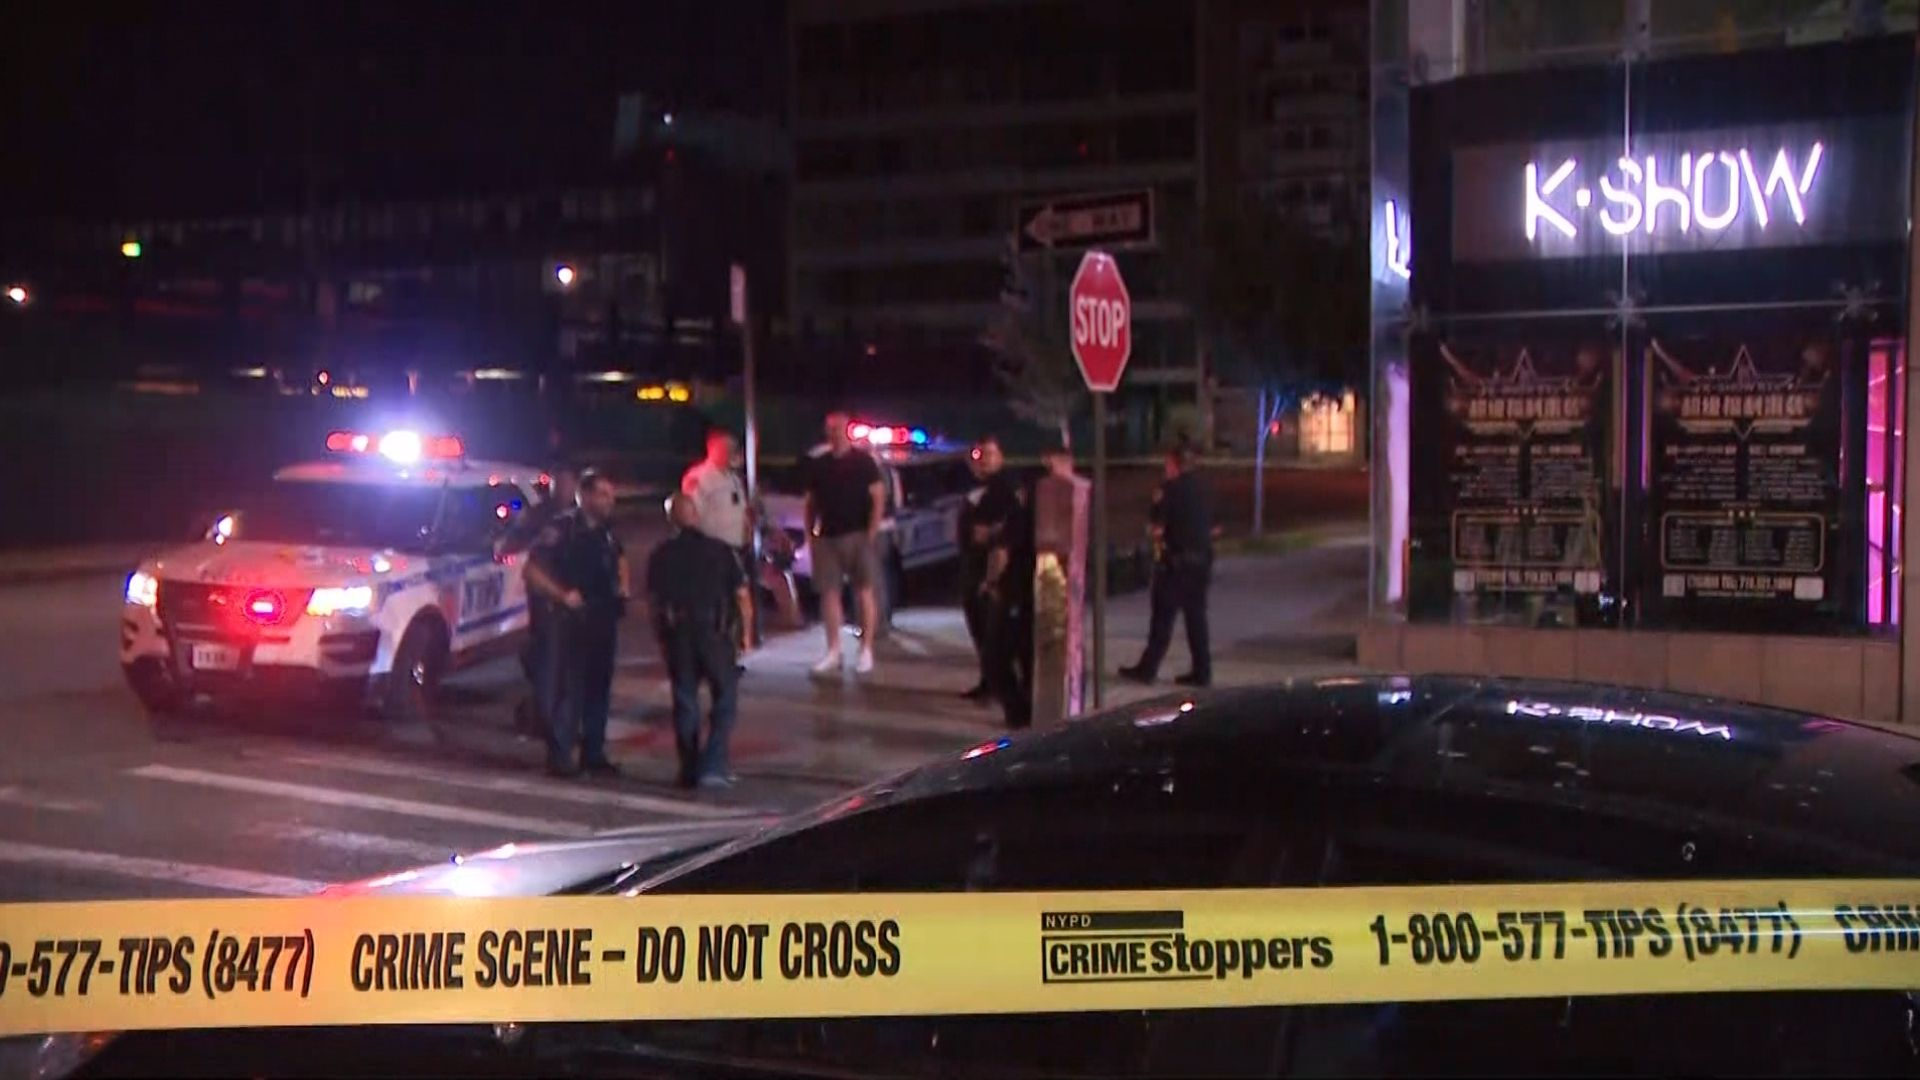 Double shooting at K-Show Lounge in Queens